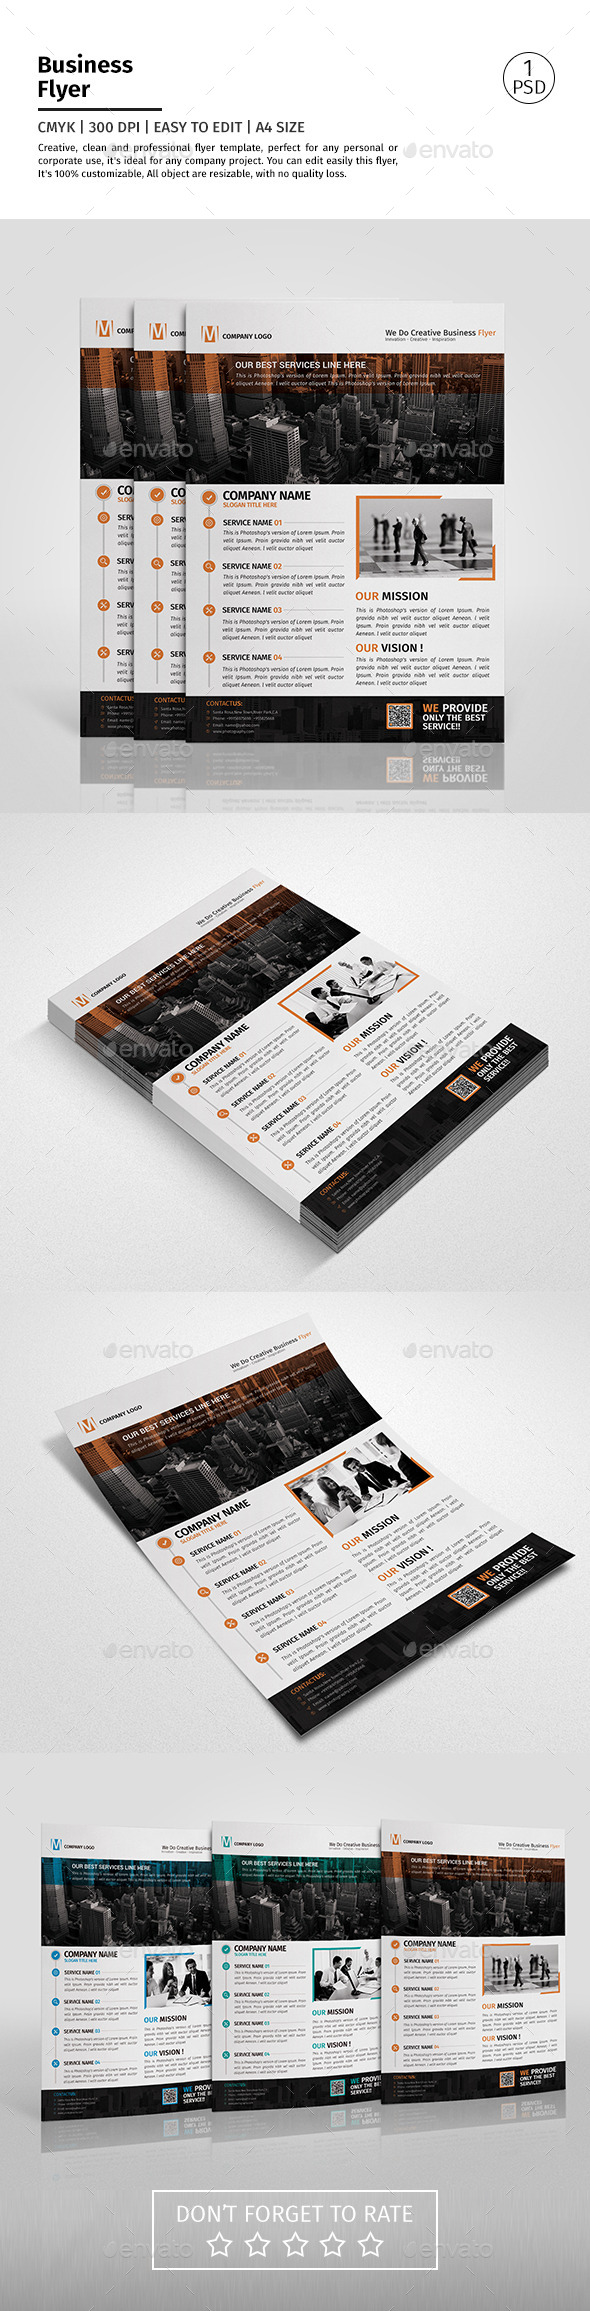 A4 Corporate Business Flyer Template Vol 08 - Corporate Flyers